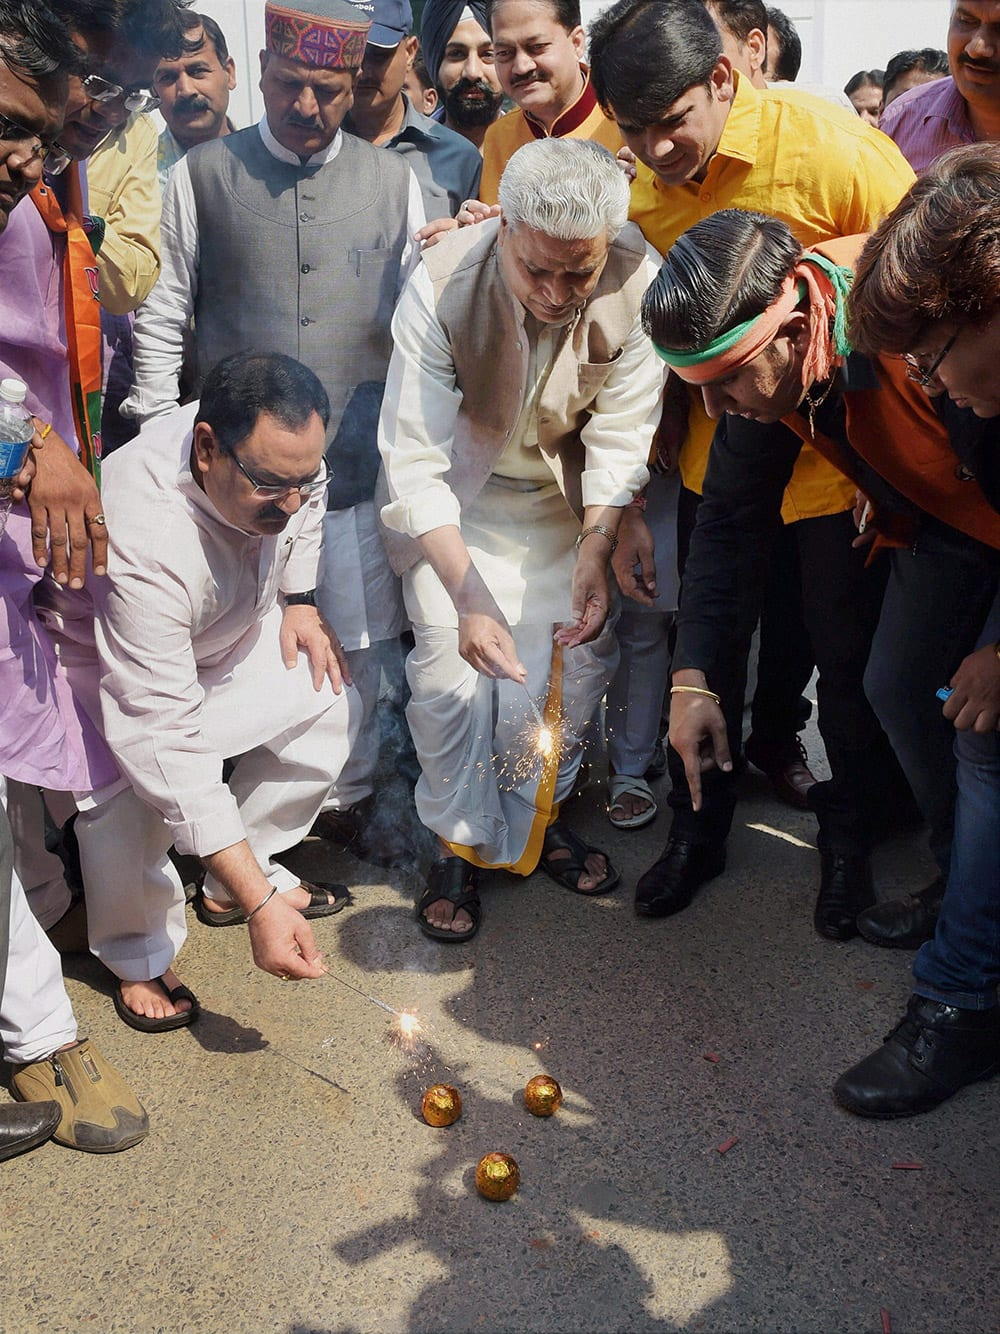 BJP general secretaries J P Nadda and Ram Lalji with party supporters burst crackers while celebrating the partys victory in Haryana and Maharashtra Assembly elections, in New Delhi.